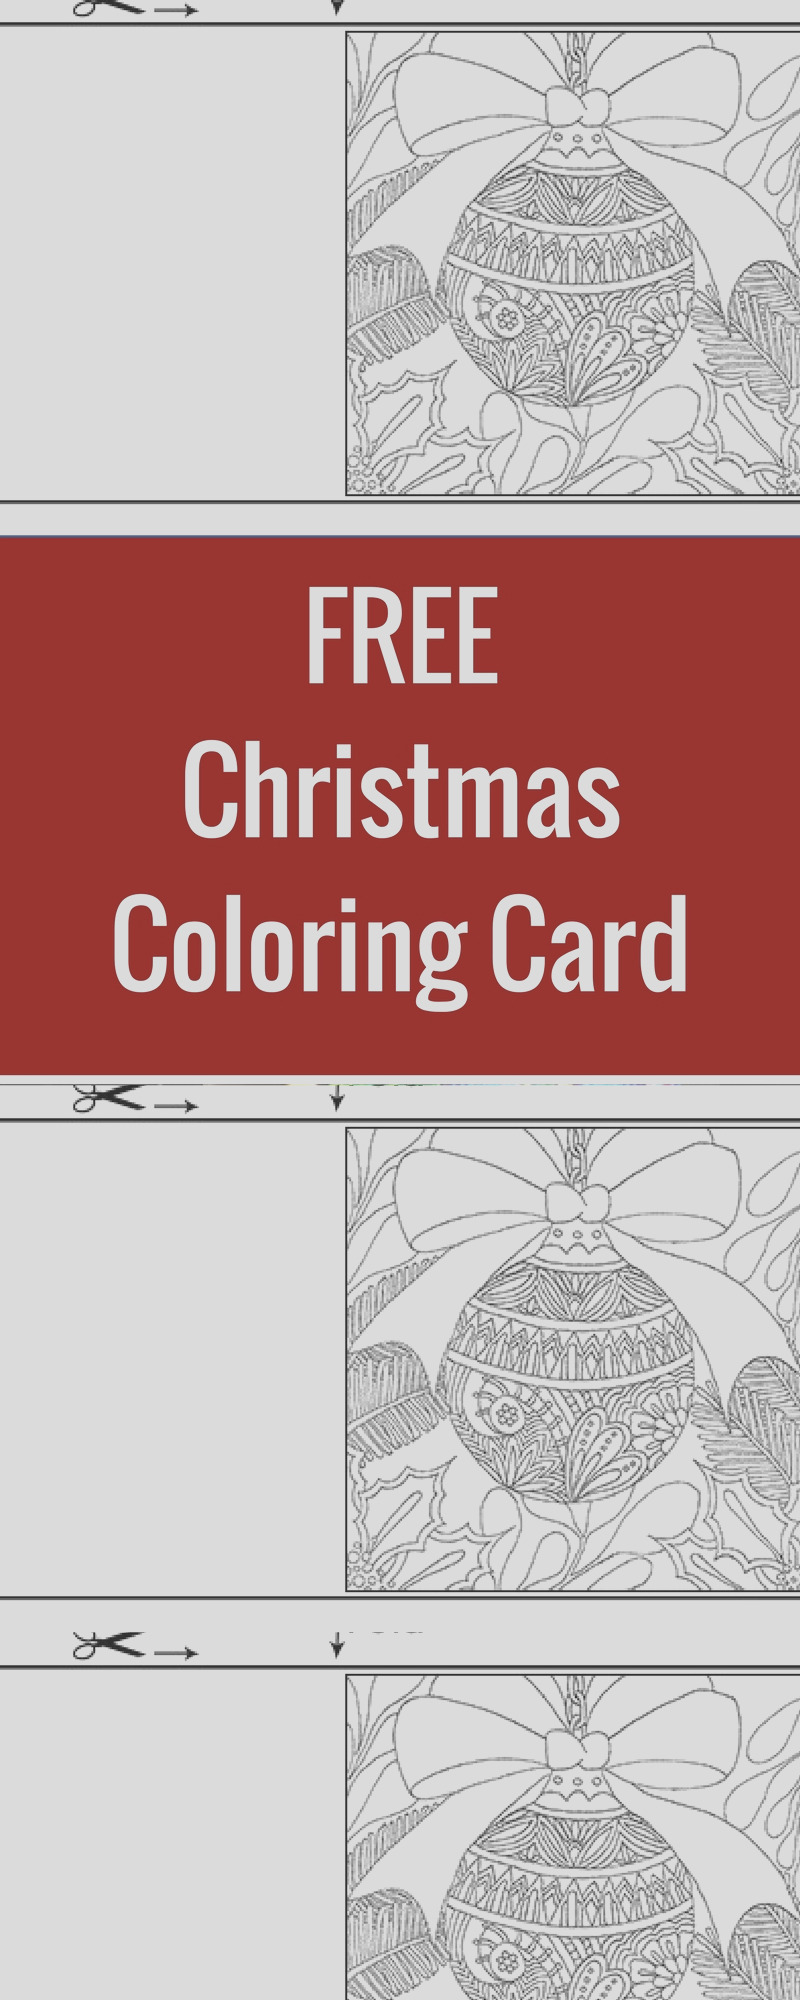 december free coloring tombow